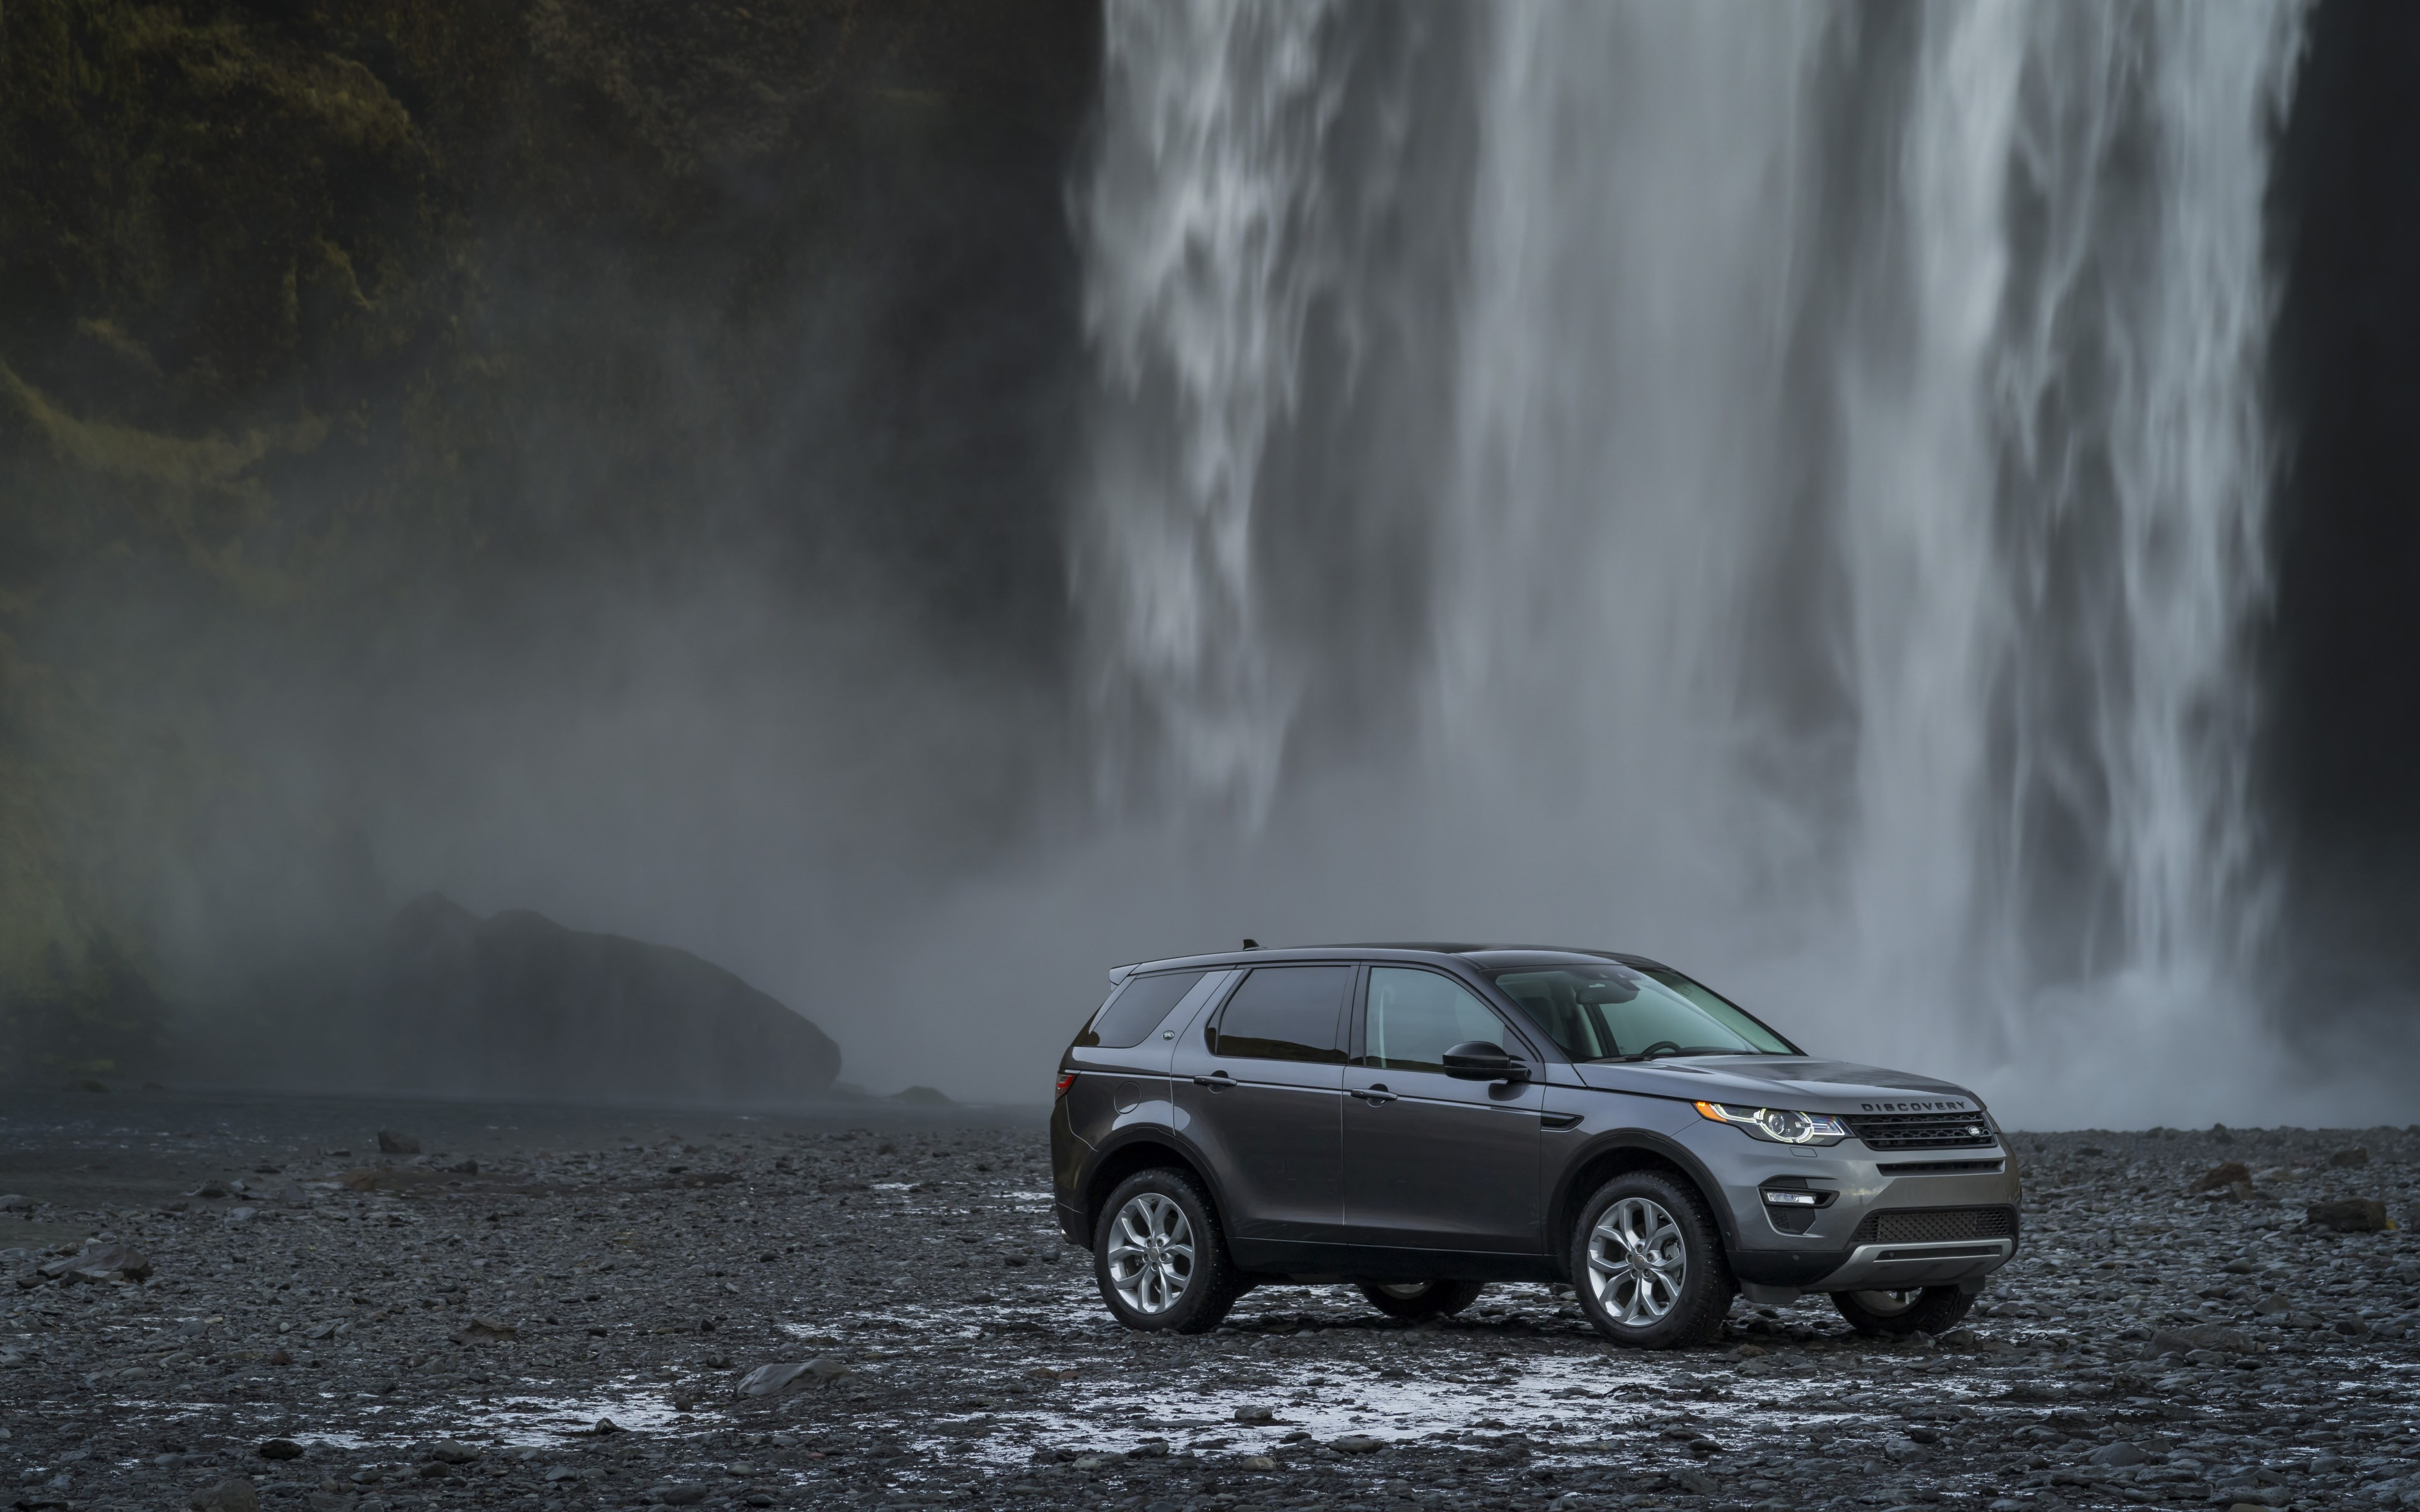 Land Rover Discovery Sport wallpaper 3840x2400